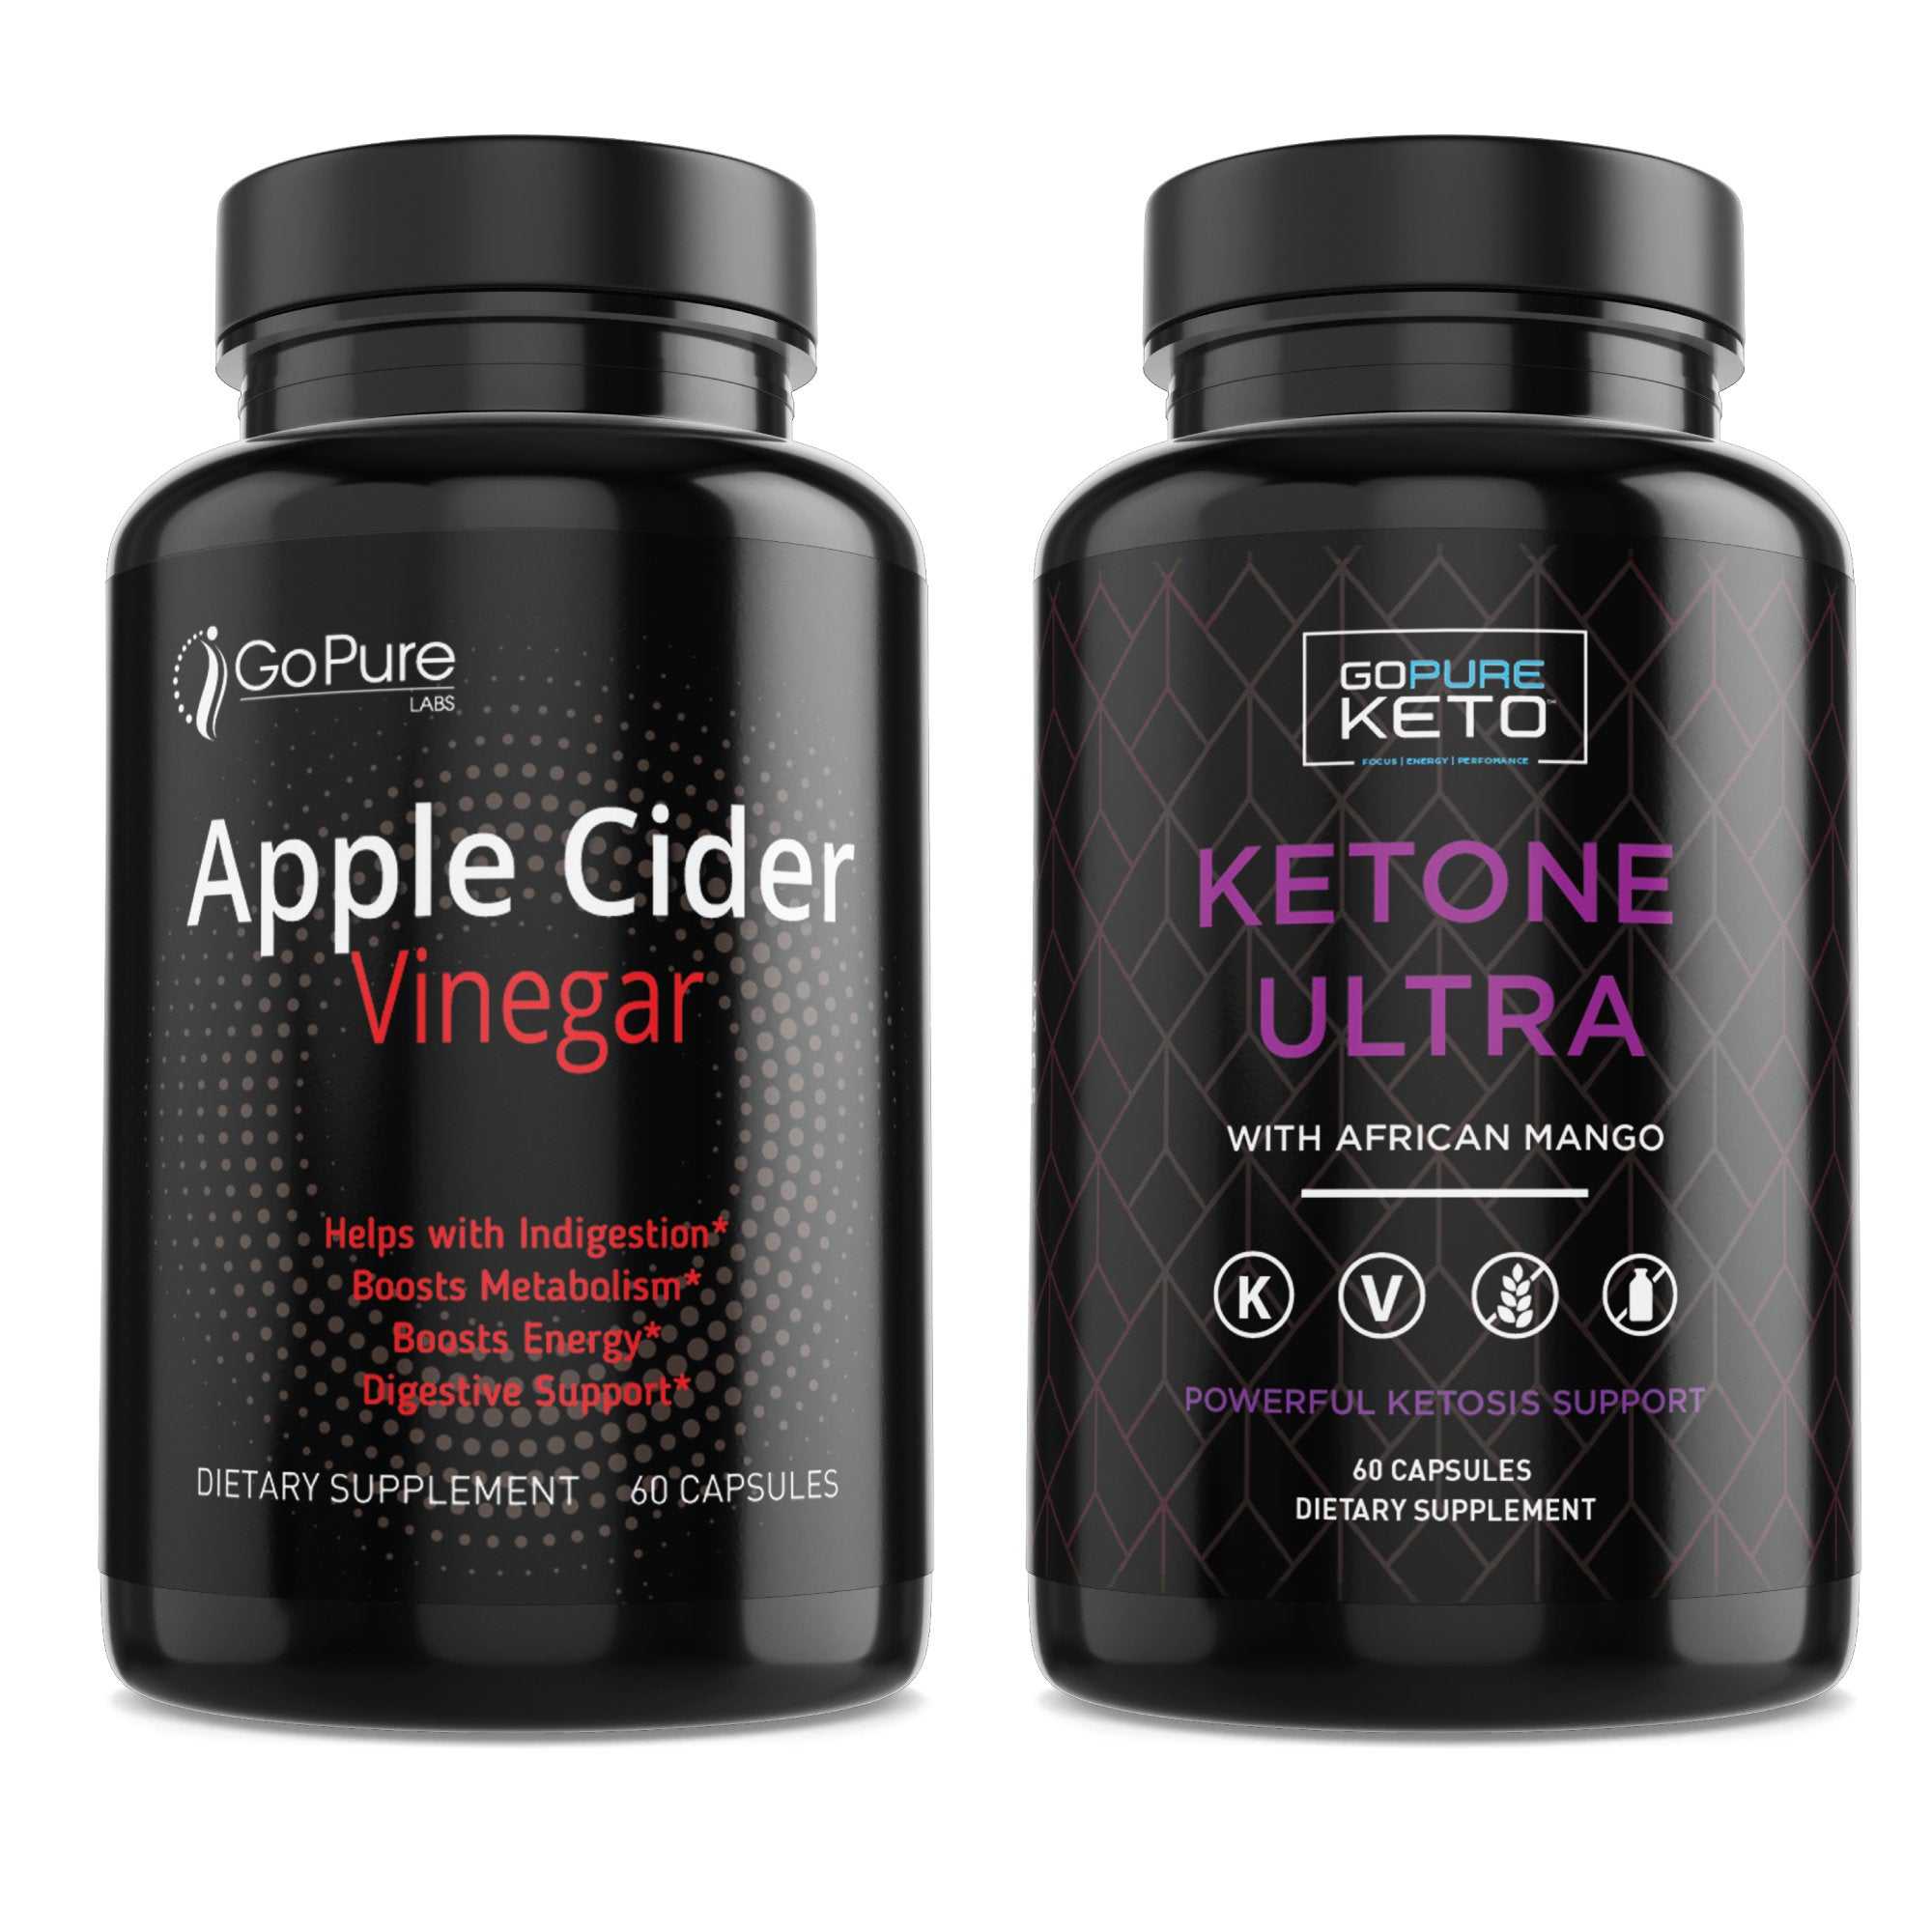 Go Pure Apple Cider Vinegar and Go Pure Keto Ultra